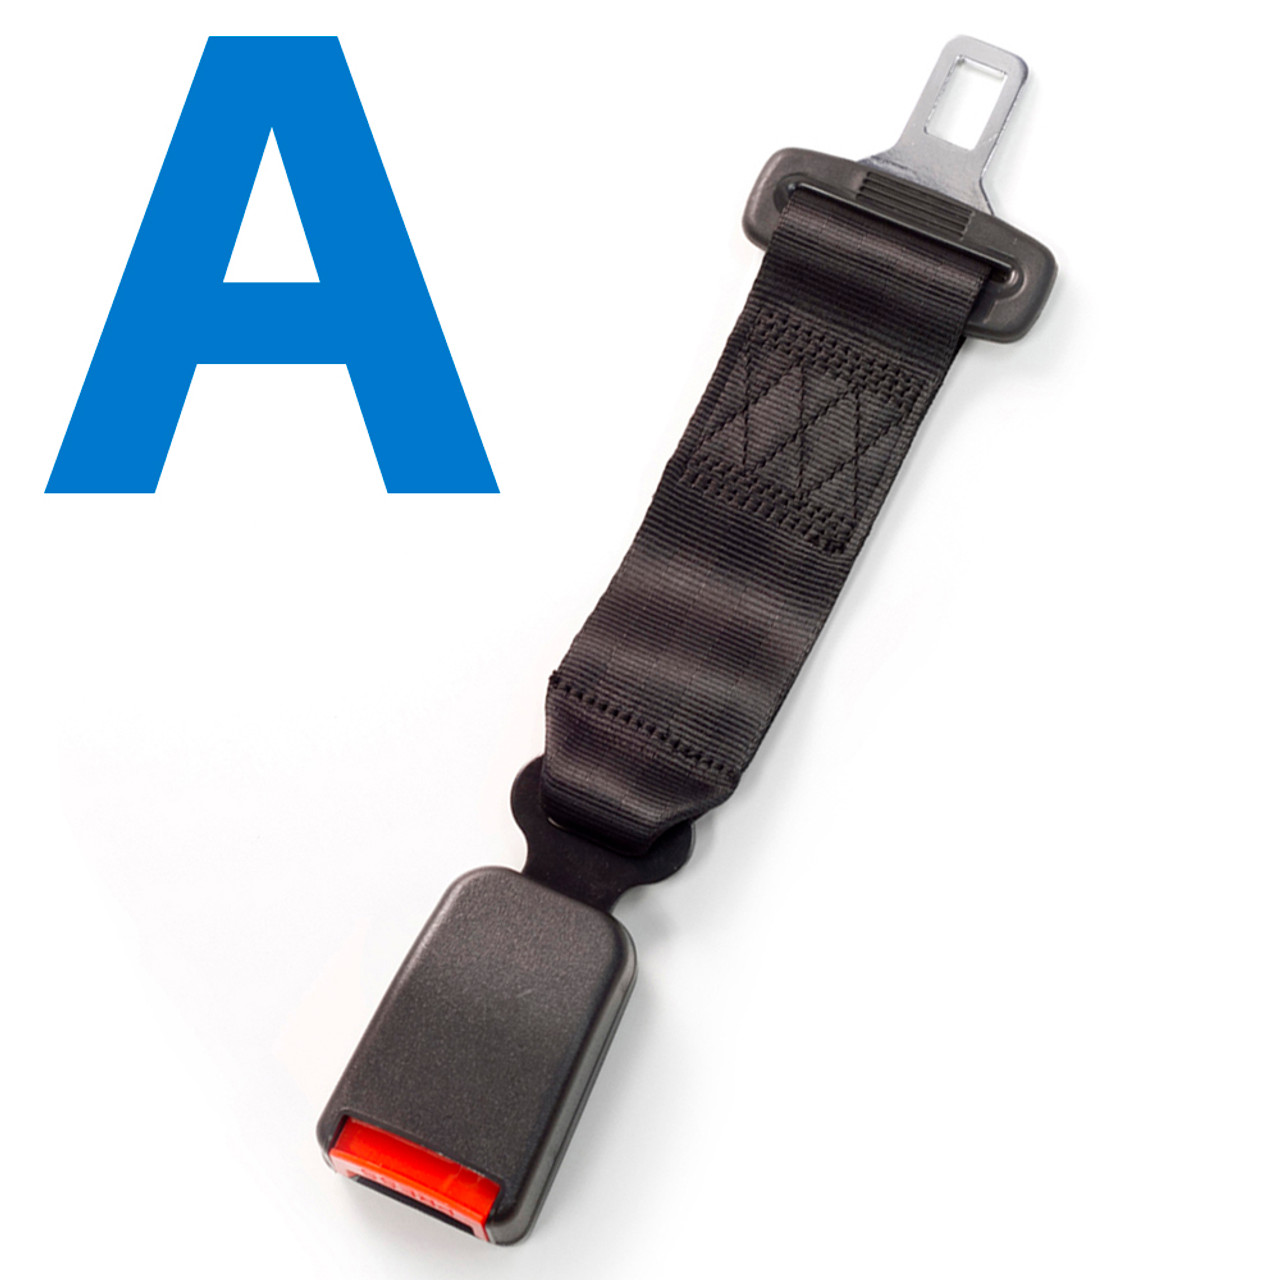 Toyota Sienna 2010-2018 Owners Manual: Fastening the seat belt (for the third center seat)